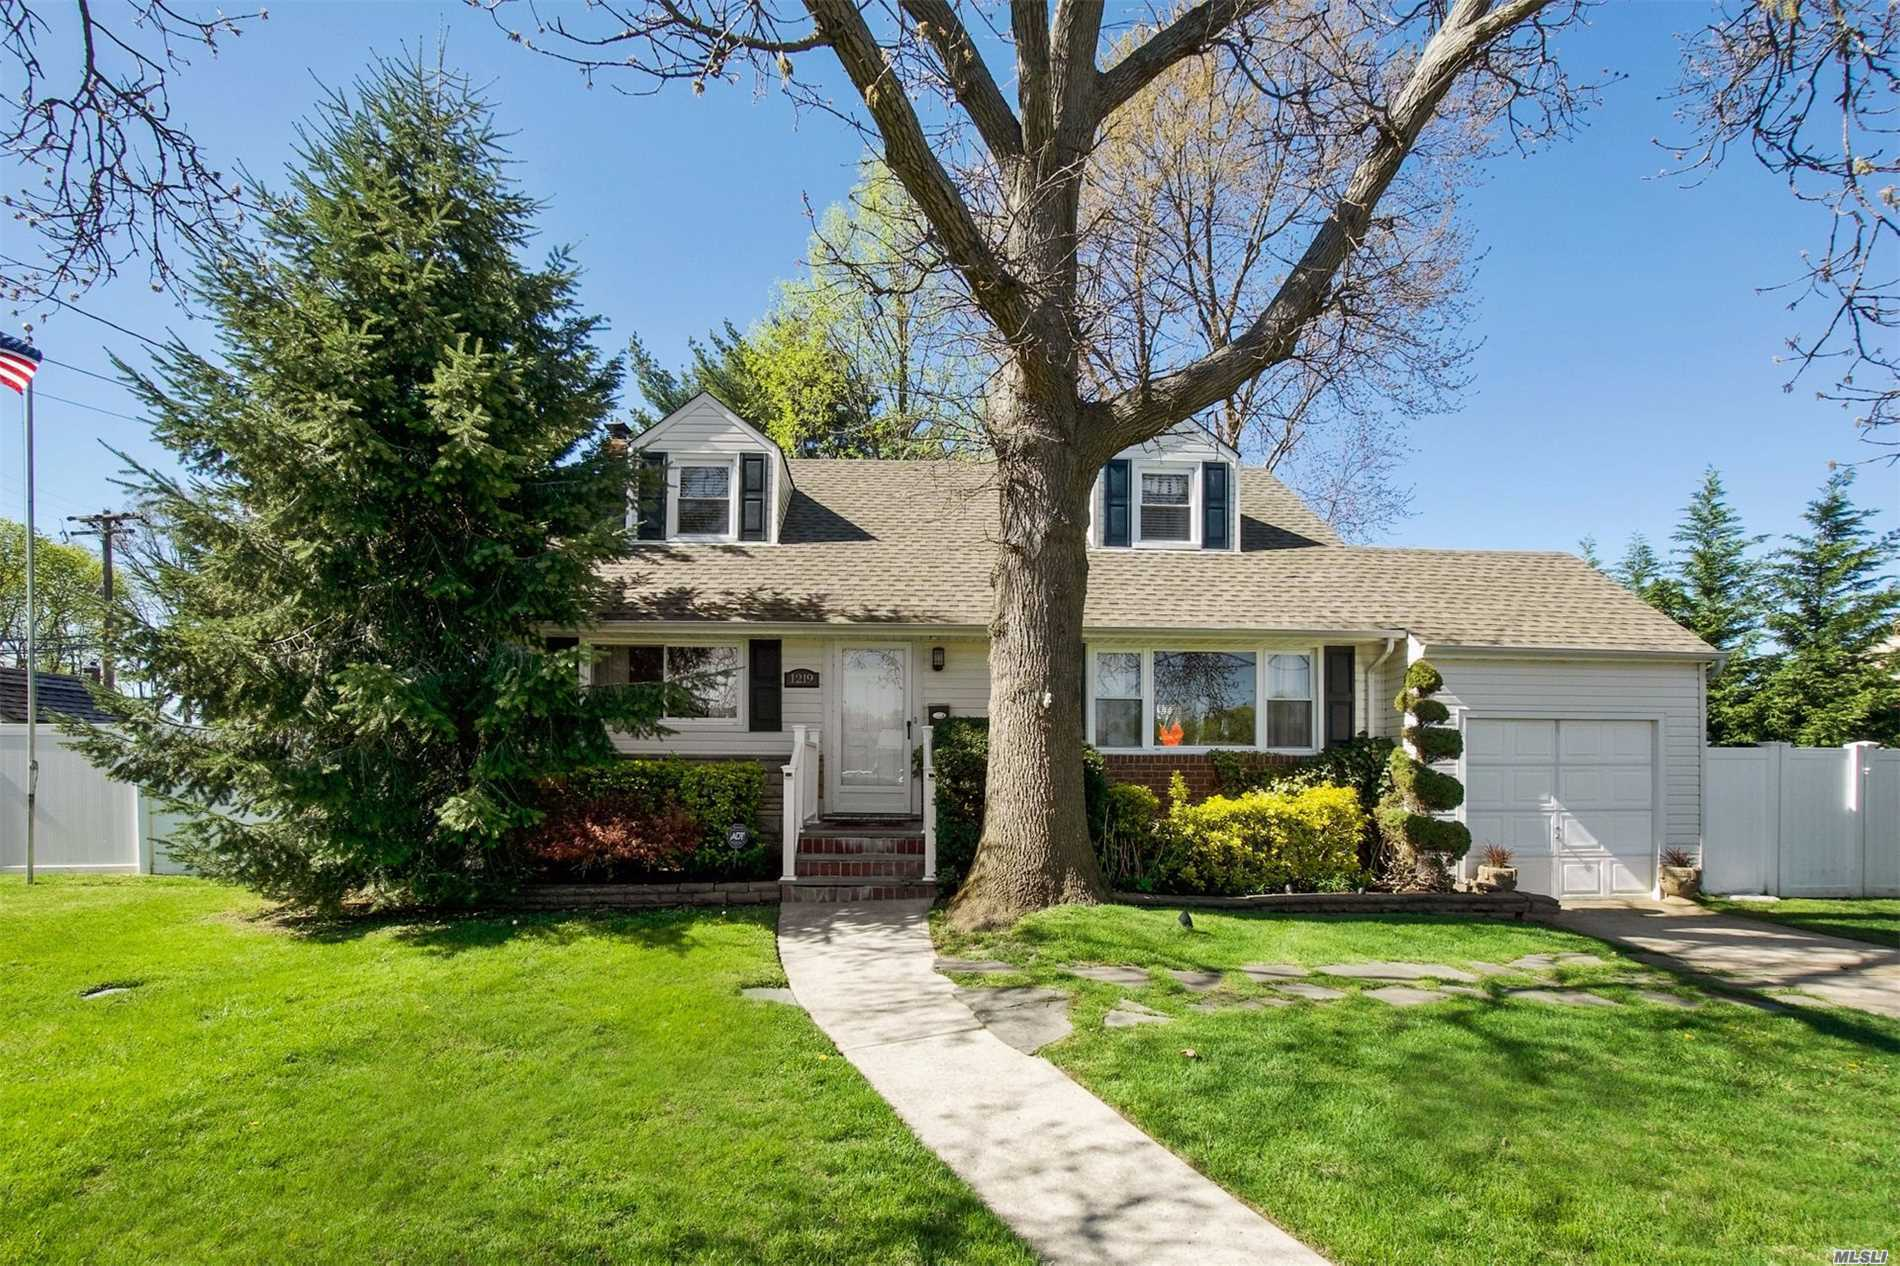 Don't Miss This Lovely Maintained Cape In Sunset City -This Beautiful 3 Bedroom Home features a Living Room, Dining Room, Eat In Kitchen, Den, 2 Full Baths, Large Fully Finished Basement w/Bar, Theater & Play Area, This Large Fully Fenced Property has an oversized Paver Patio & is truly an Entertainers Delight!! Amenities include New Roof, New Appliances, 150 Amp Elec, Natural Gas, Hardwood Floors Throughout and more - Just Unpack & Move In...